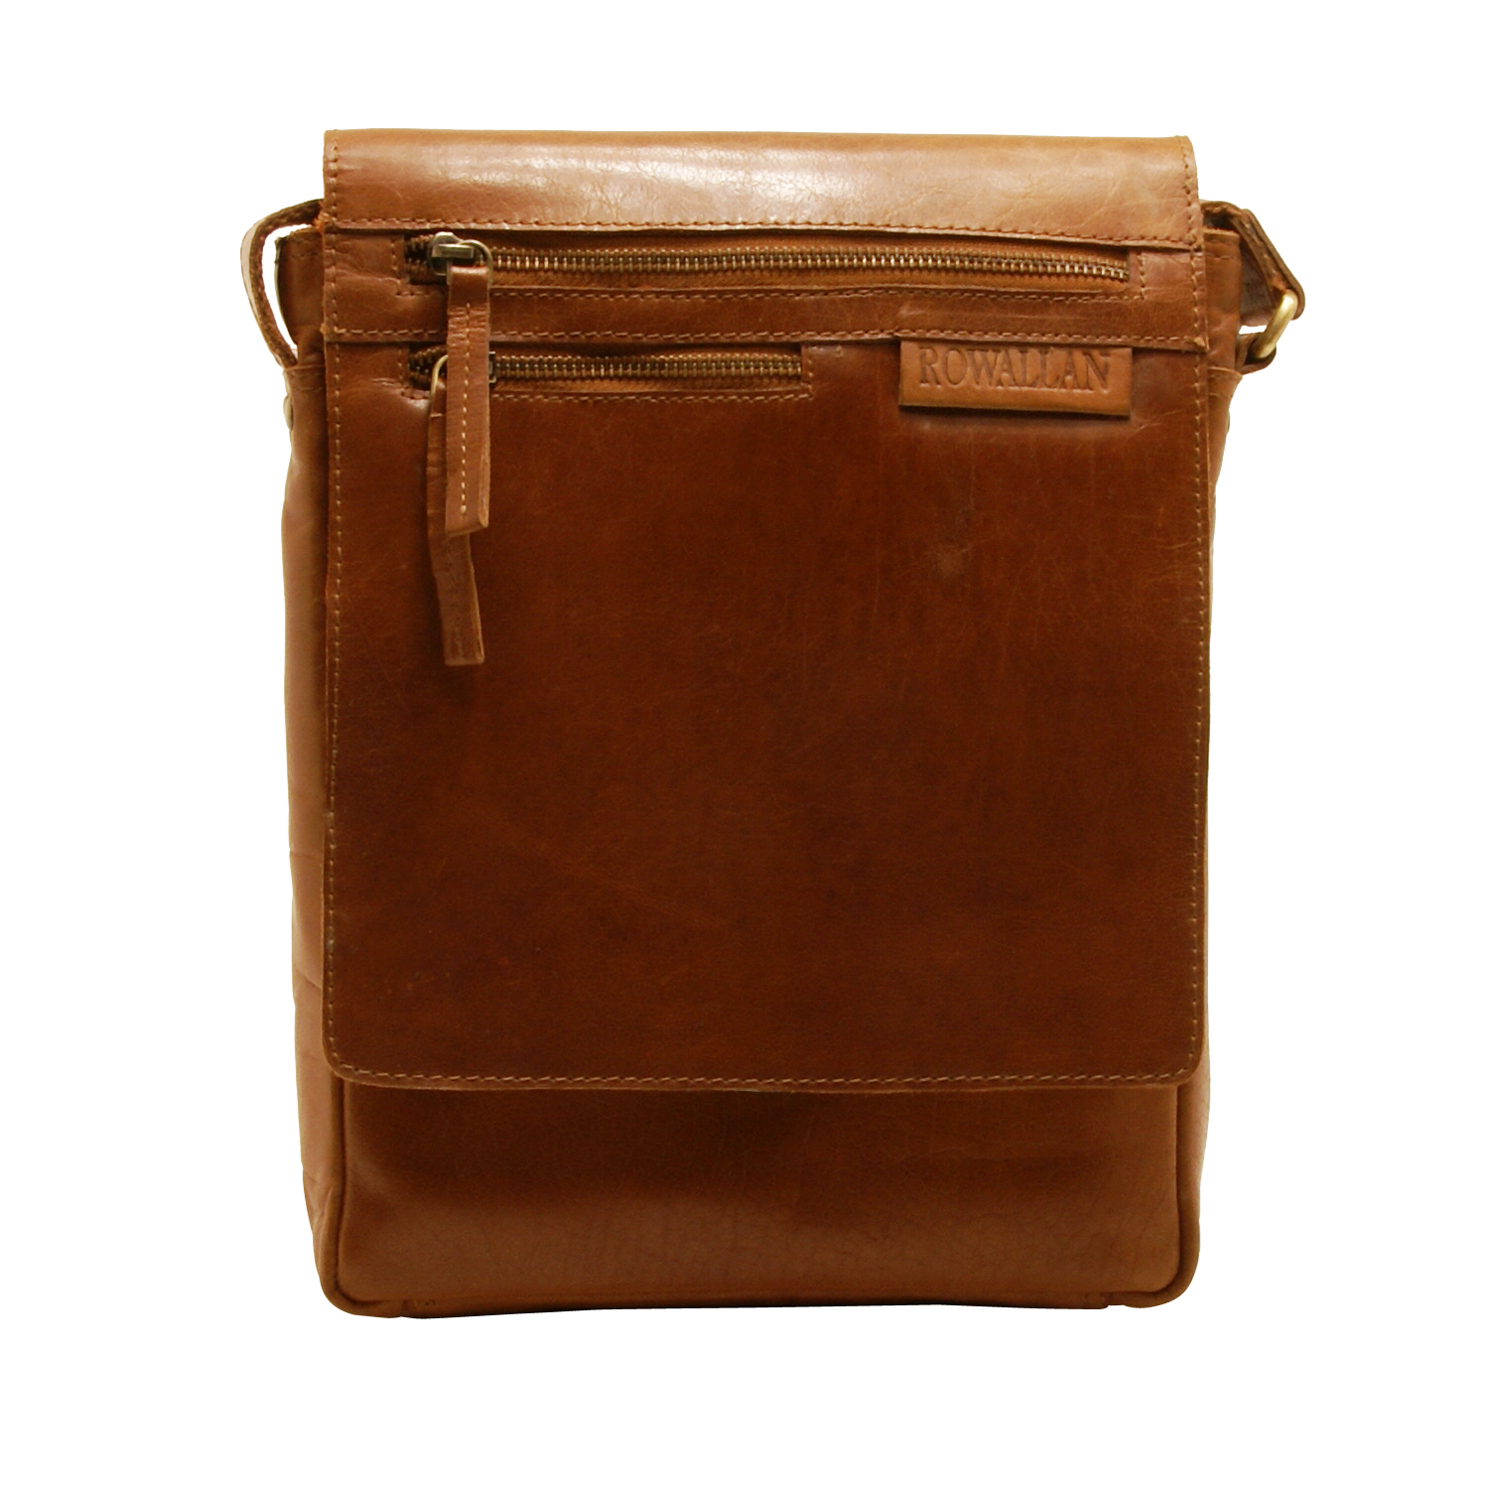 Rowallan – Cognac Pittsburgh North/South Messenger Bag in Oil Tanned Buffalo Leather